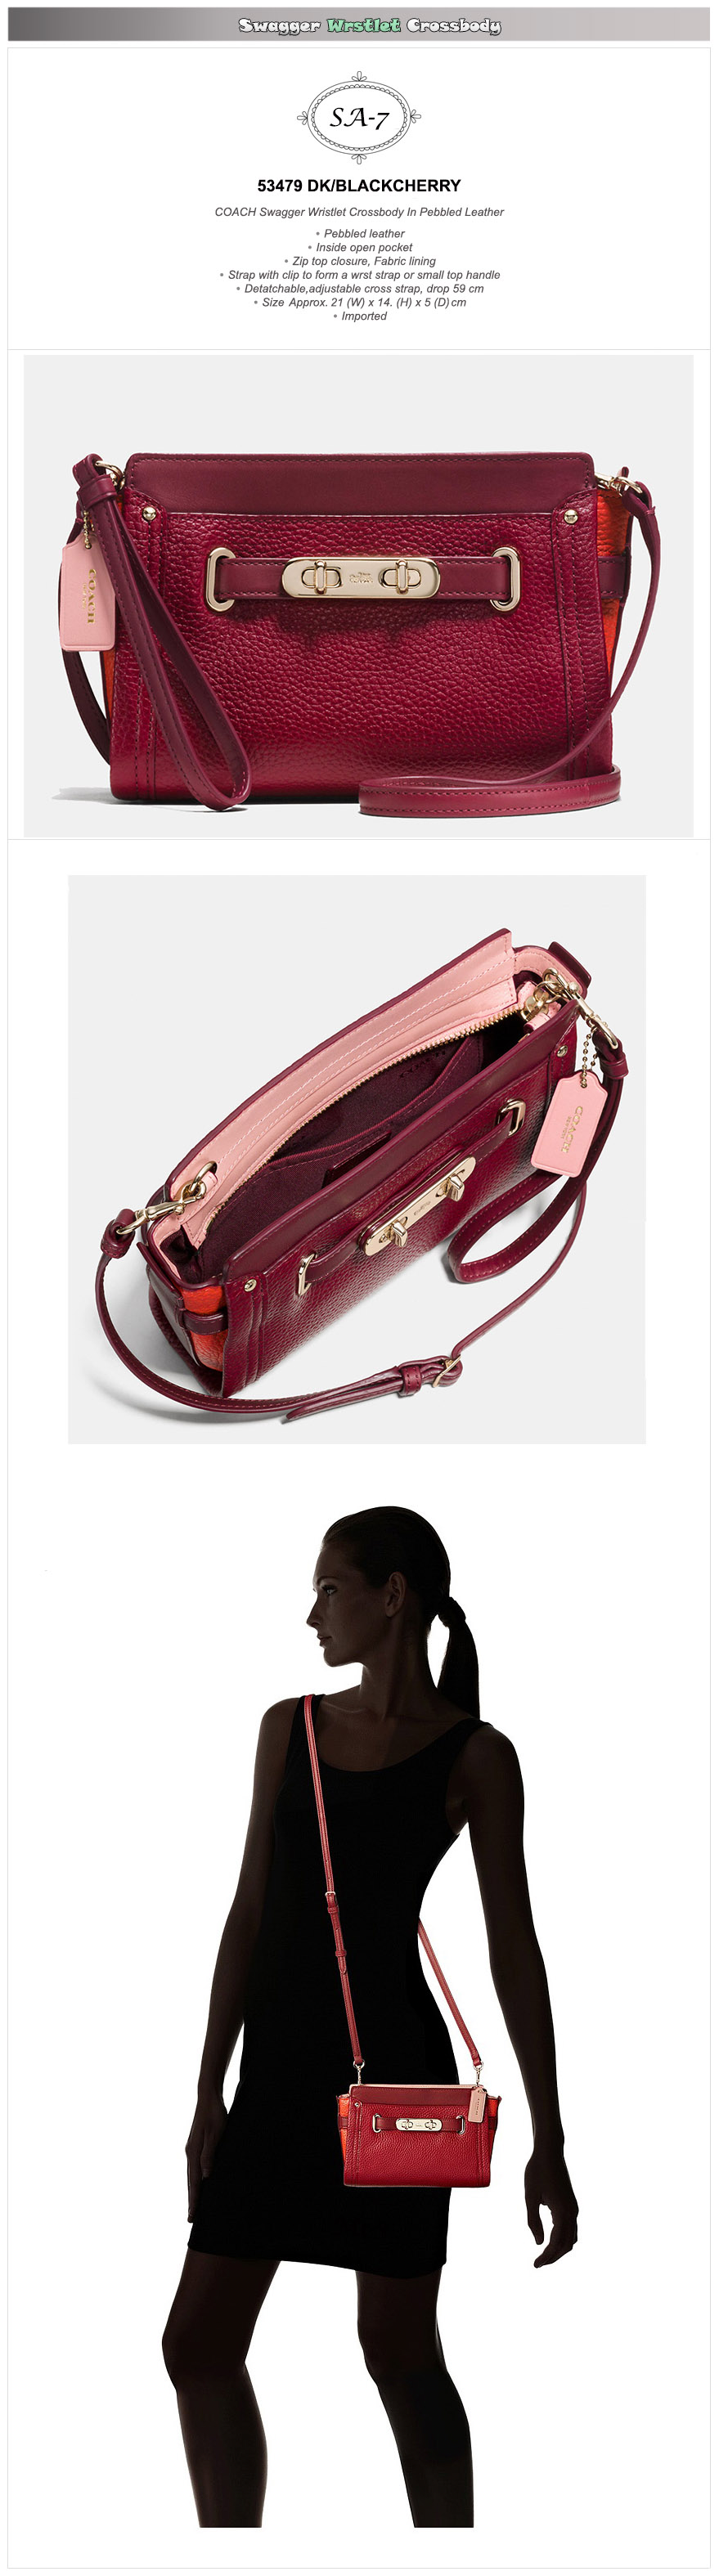 Buy Restockexclusive Sale Coach Swagger Official Genuine Products Wristlet In Pebble Leather Watermelon Go And Save Your Money Up